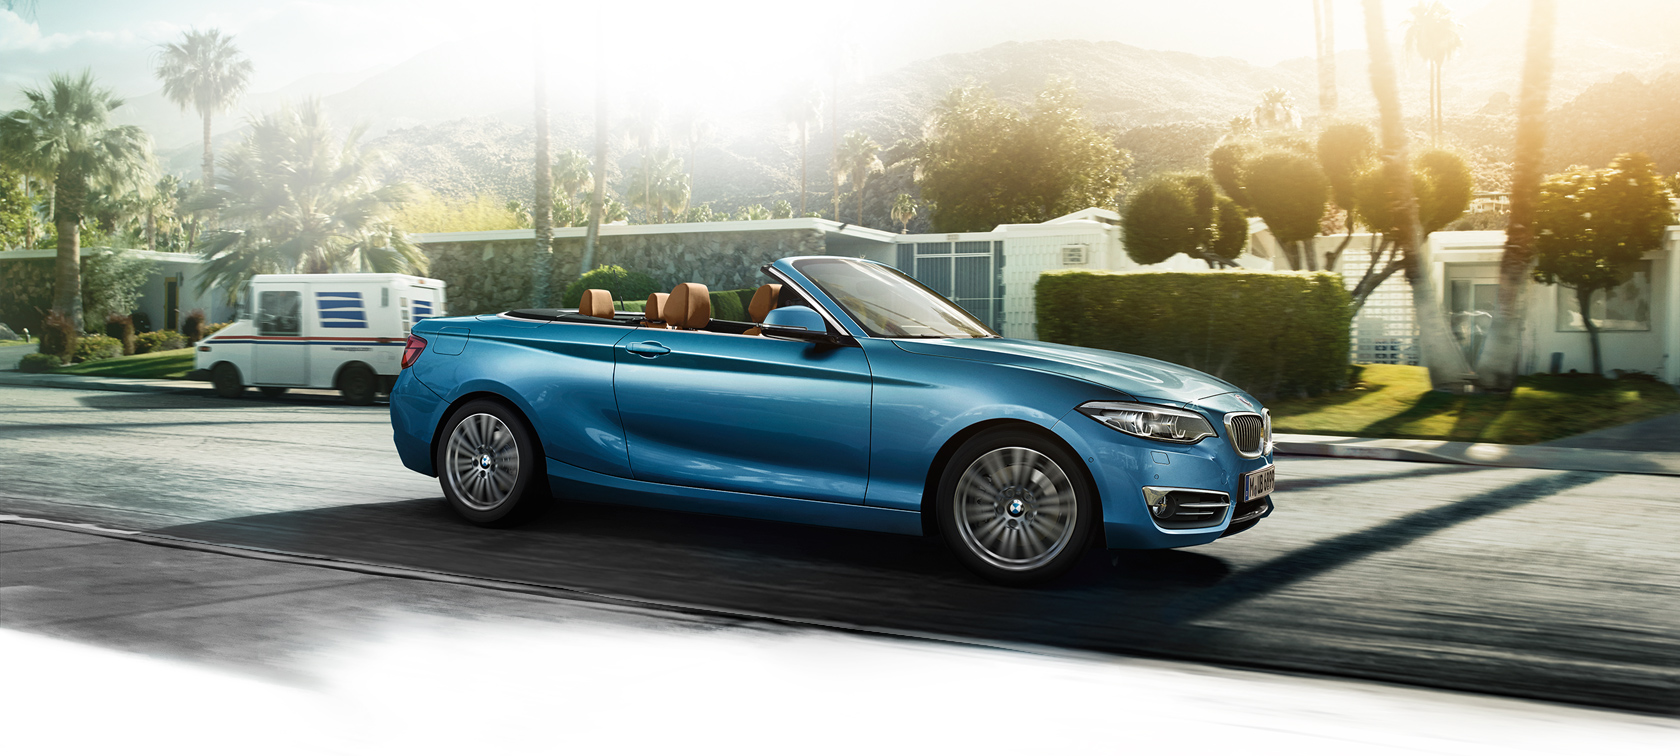 carbycar honest john car review series bmw convertible